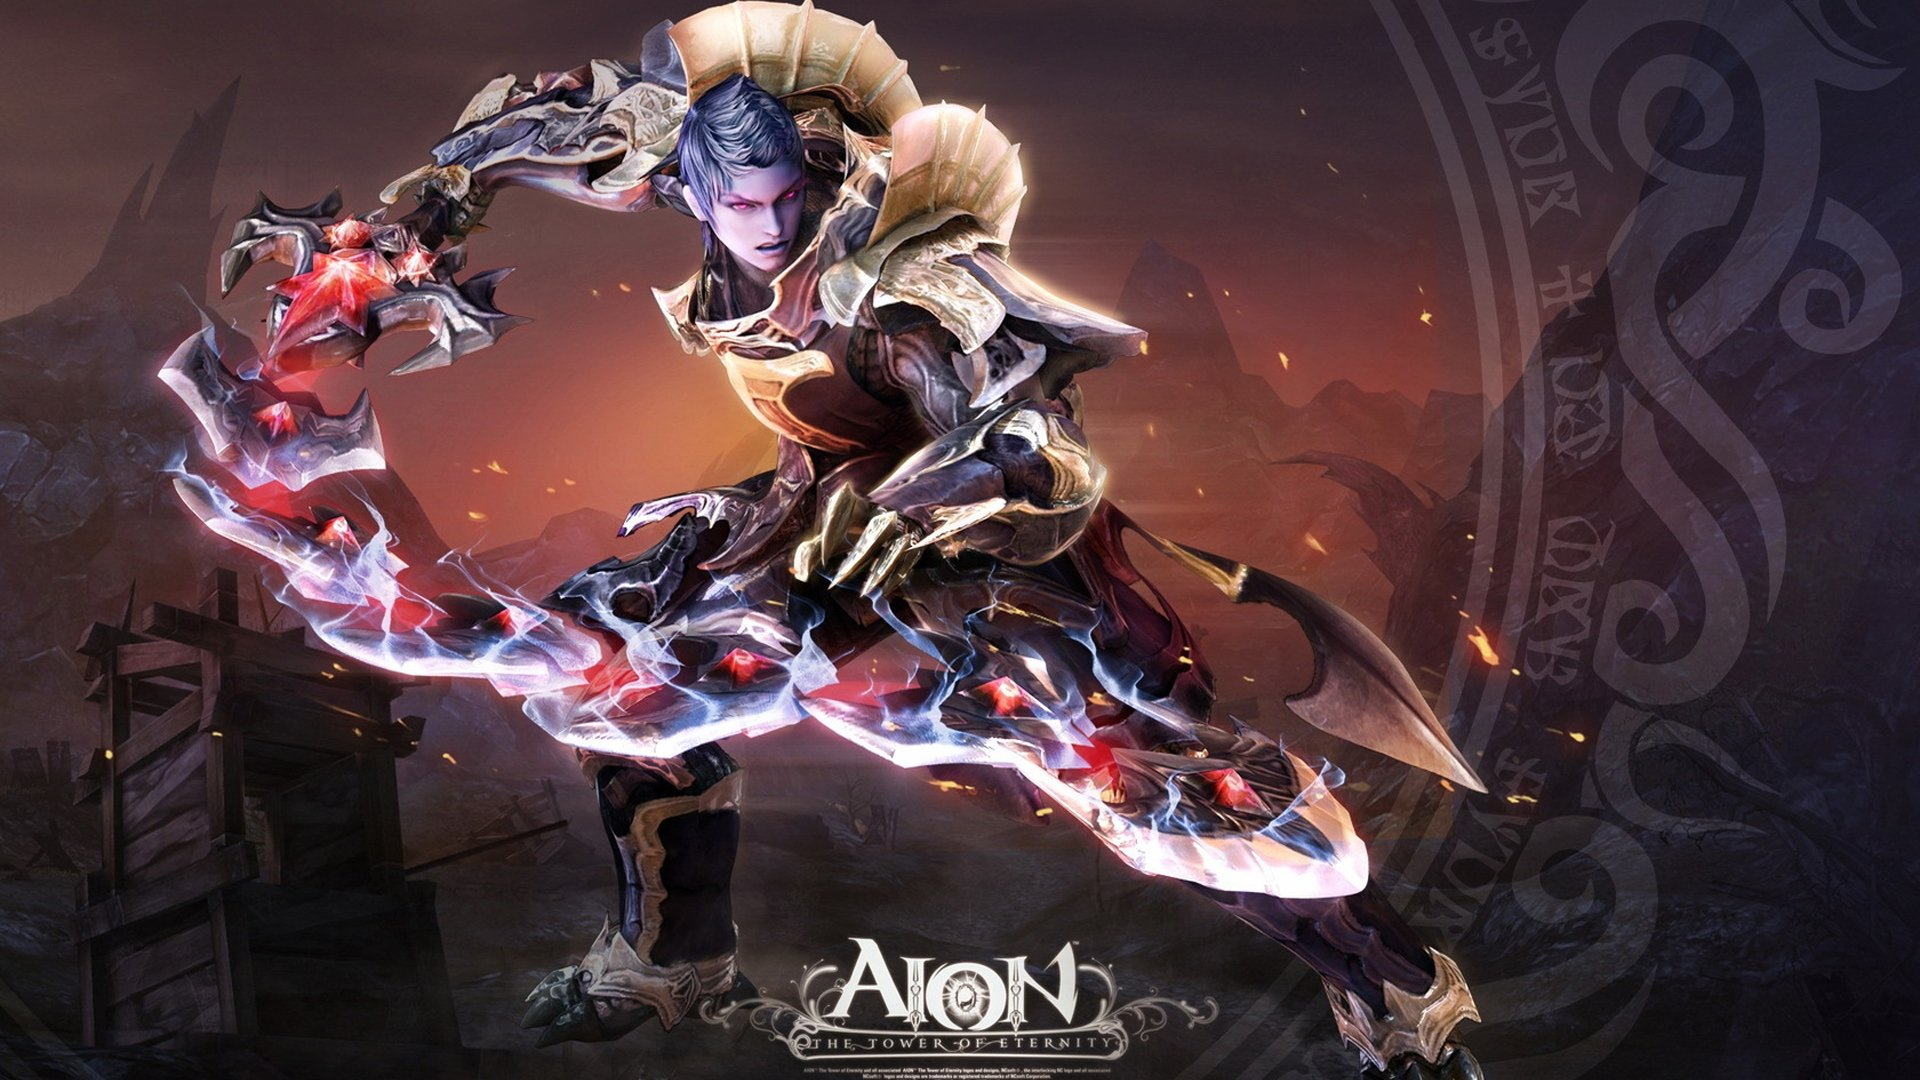 Aion Character   High Definition Wallpapers   HD wallpapers 1920x1080